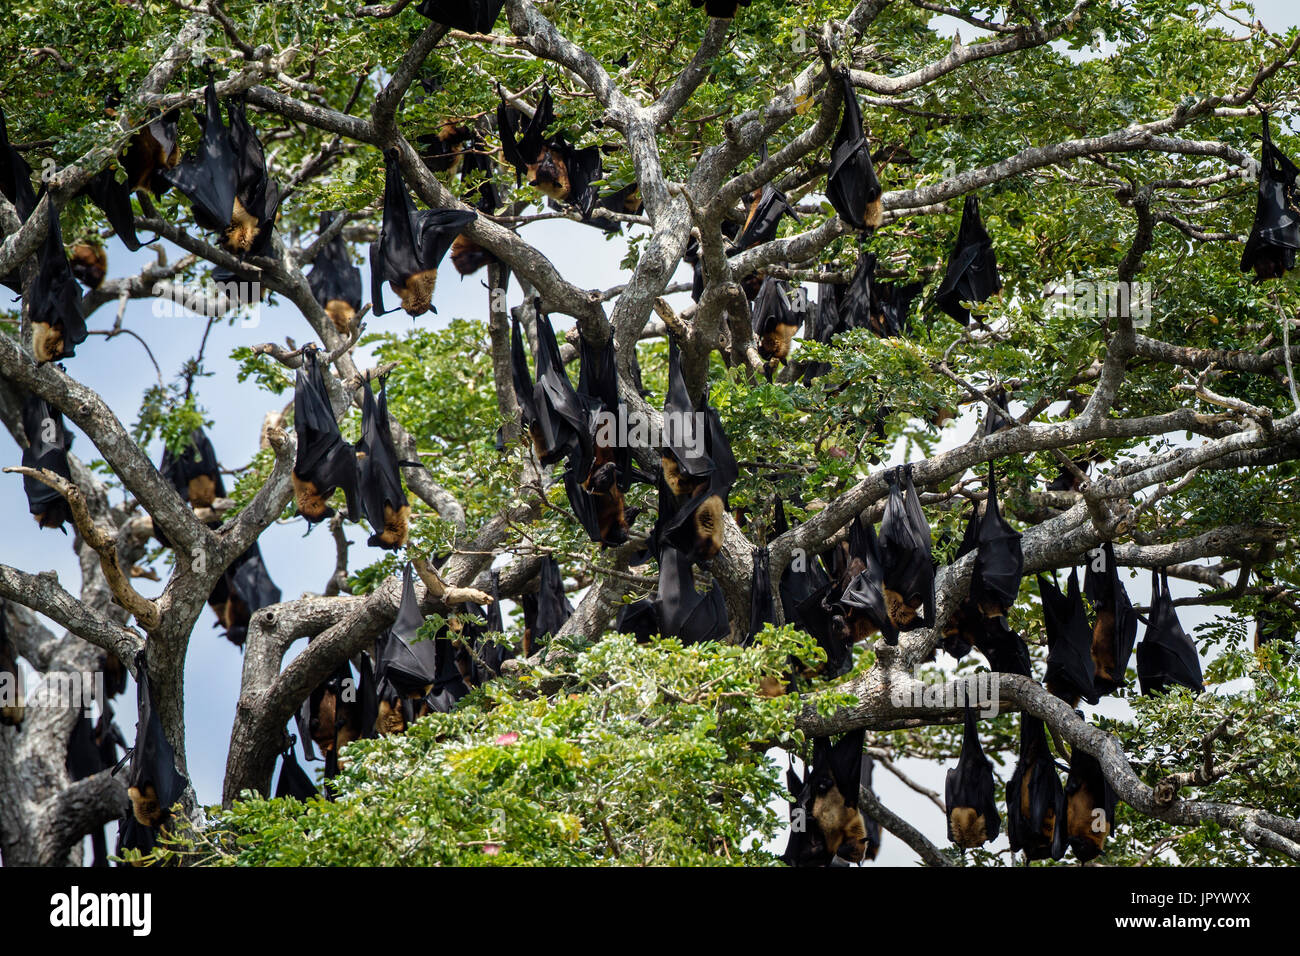 Indian Flying-fox (Pteropus giganteus) group suspending, Yala national park, Tissamaharma, Sri Lanka - Stock Image